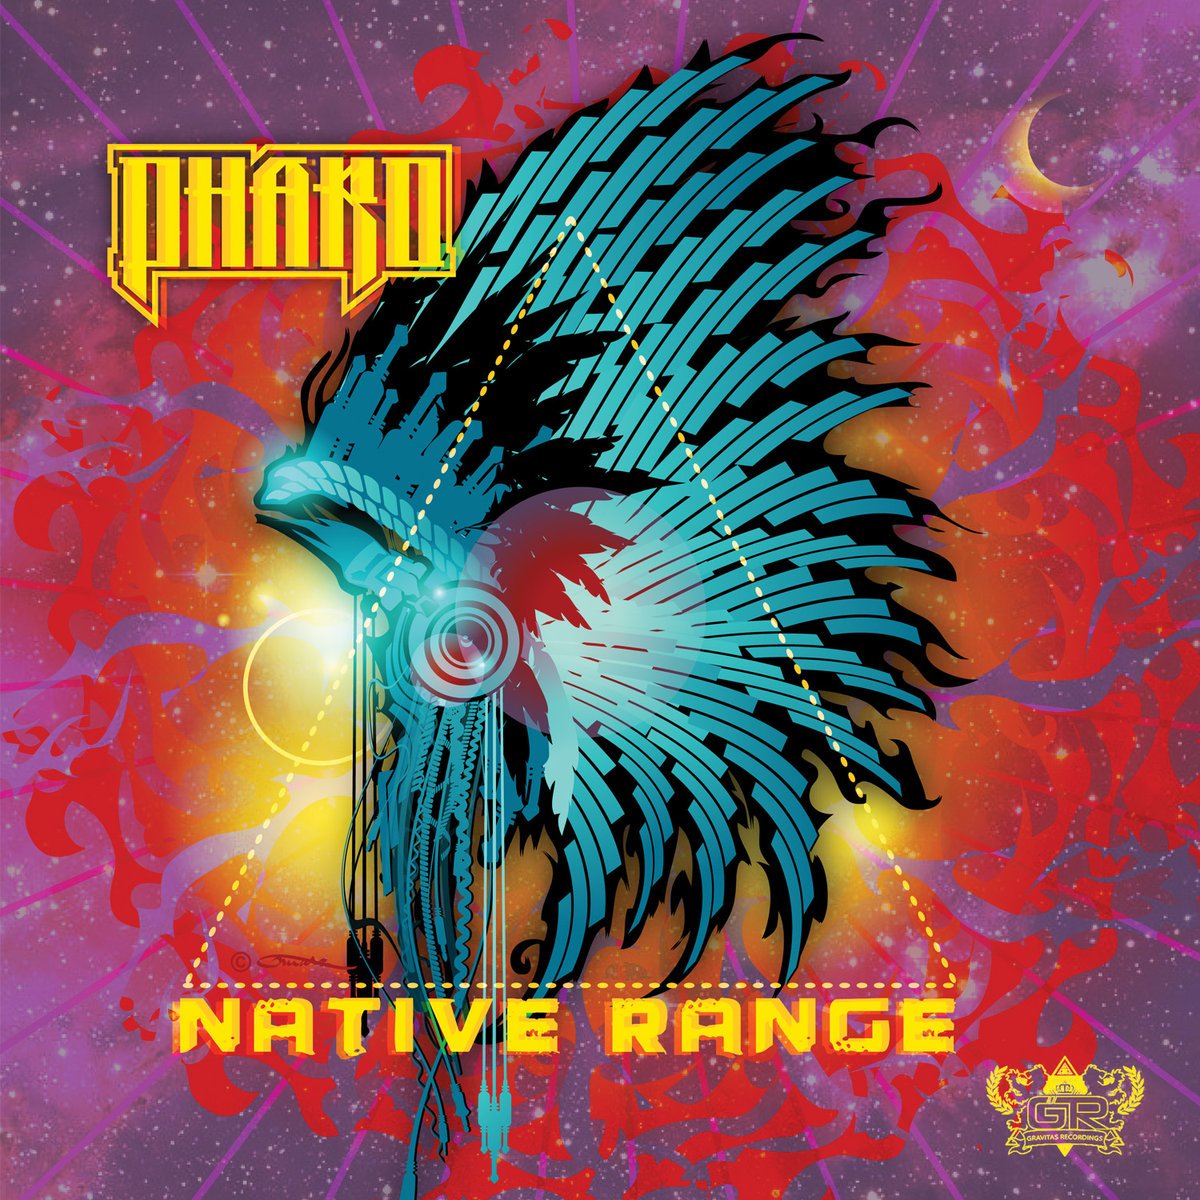 Pharo - Native Range @ 'Native Range' album (Austin)